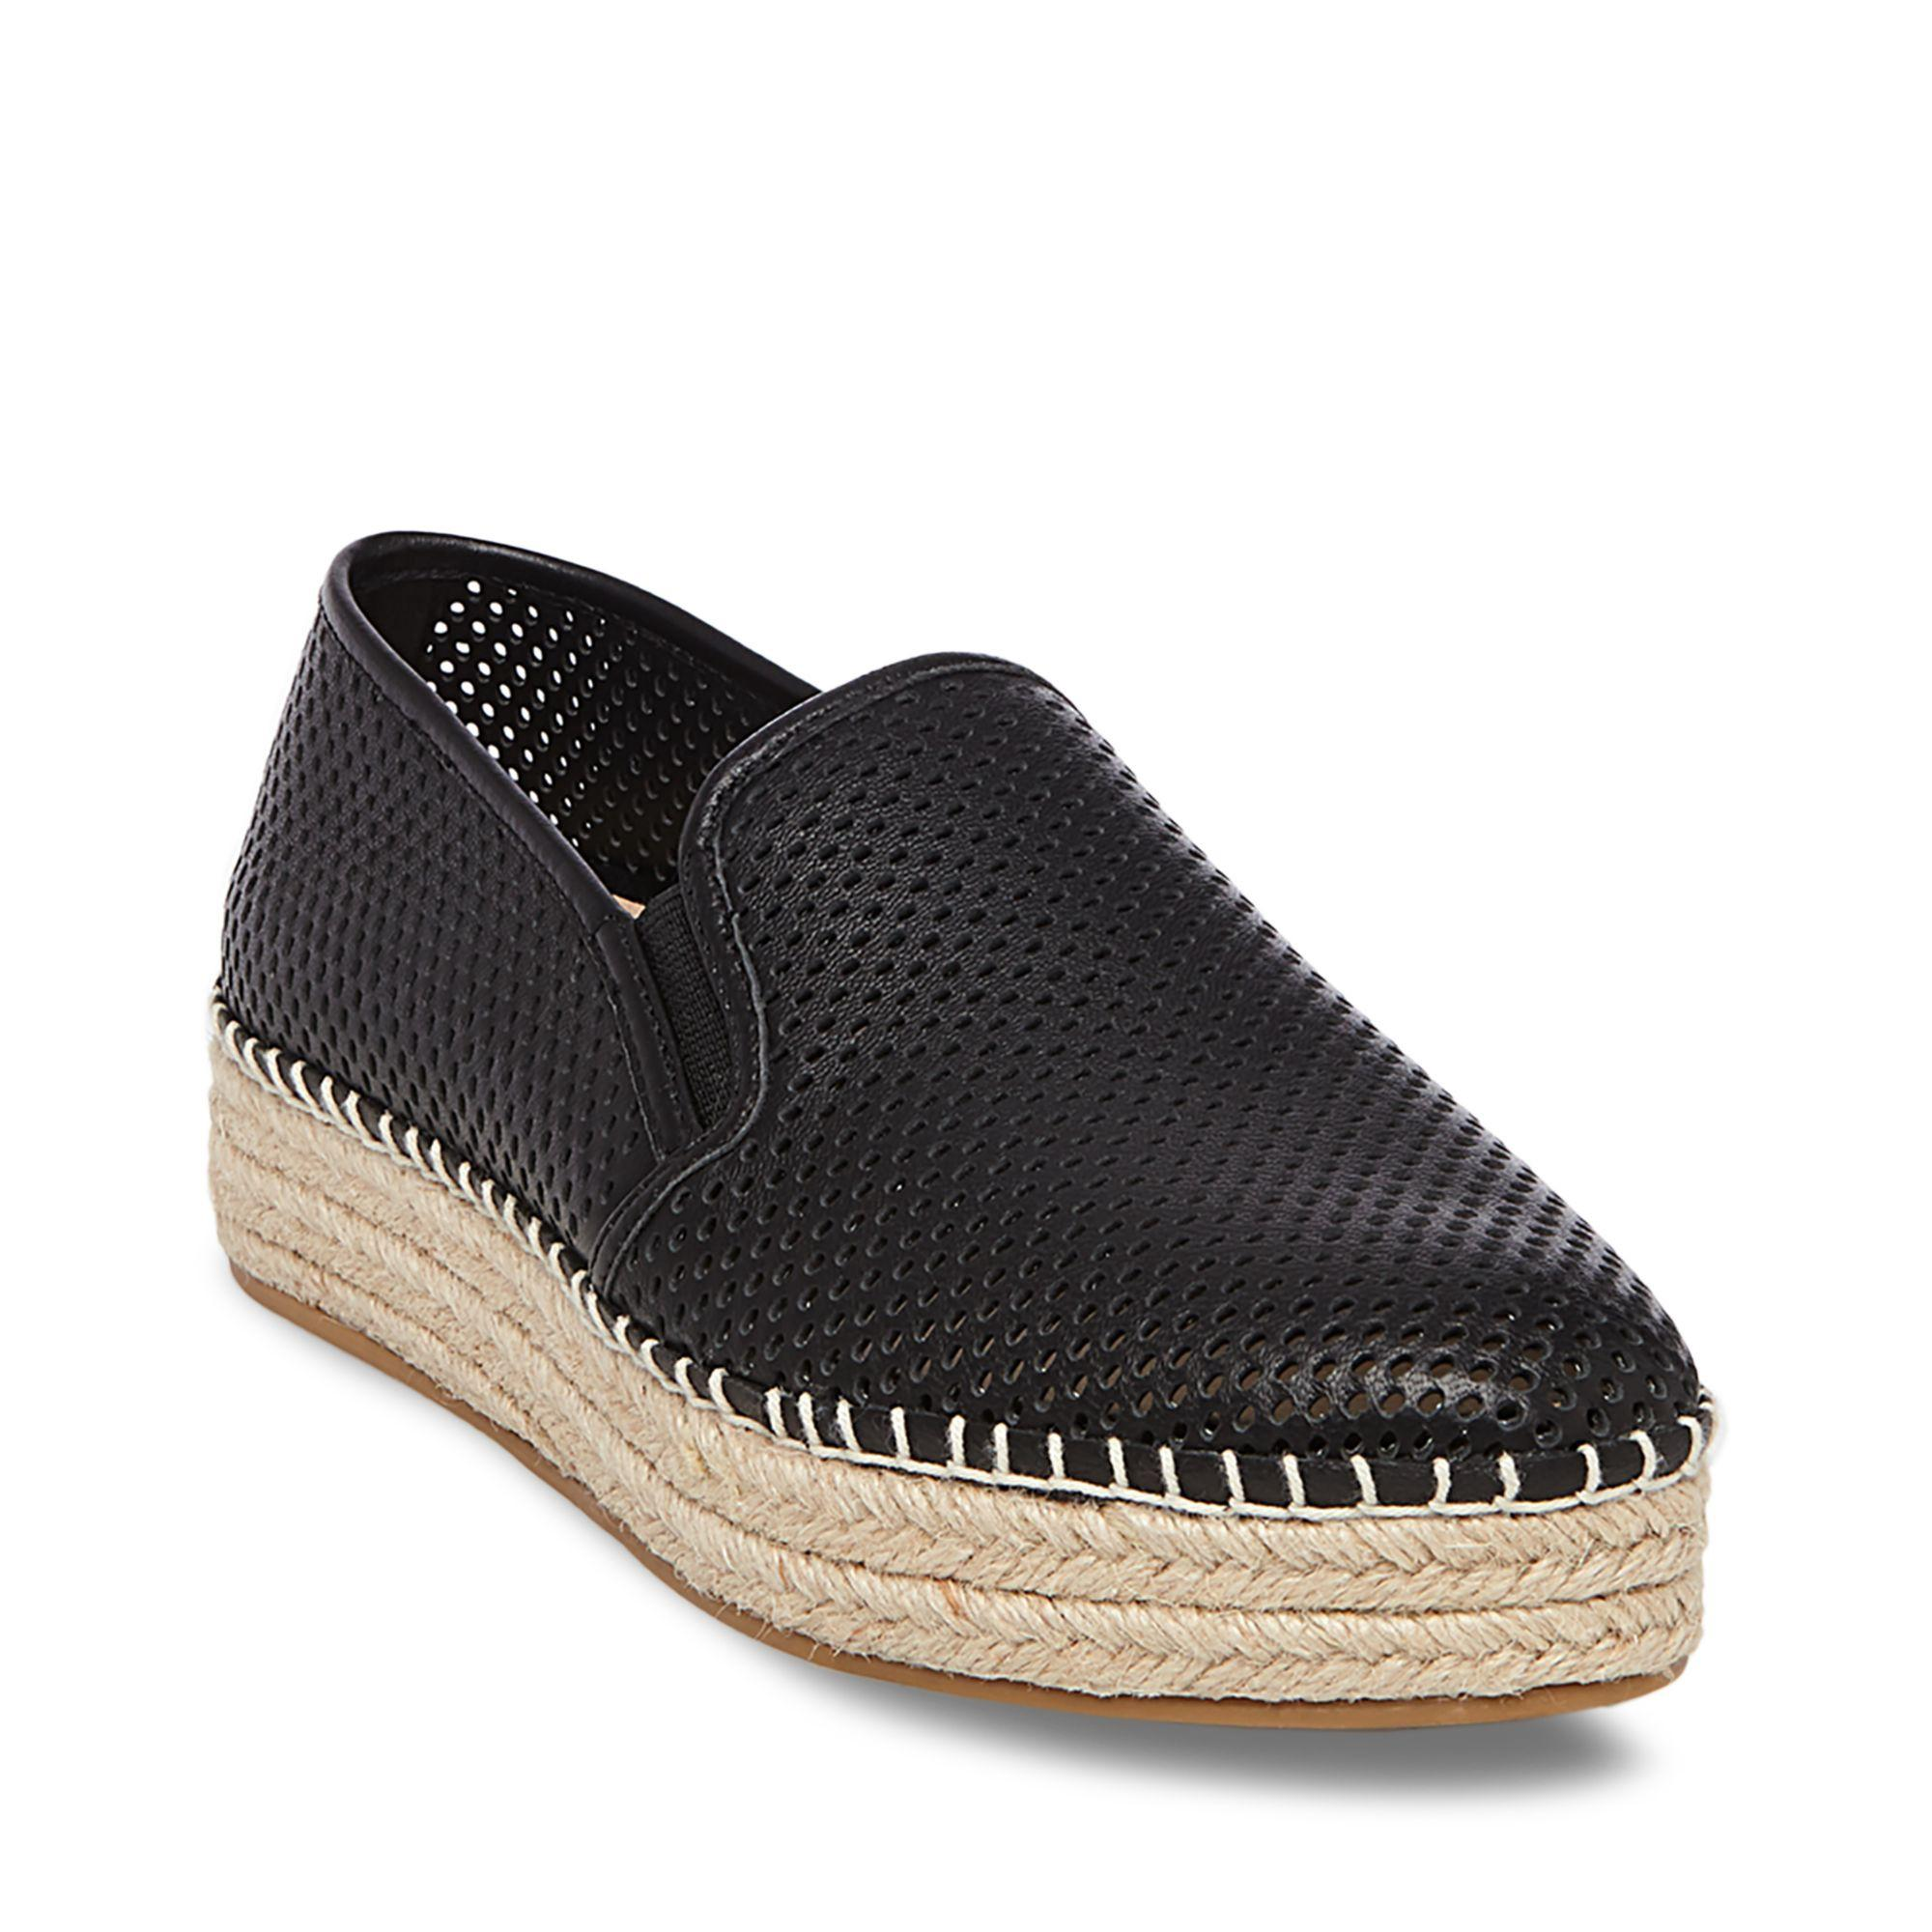 fd19bb40eb0 ... sneaker lofted on an espadrille-inspired platform sole wrapped in  braided jute. Style Name  Steve Madden Wright Perforated Platform Espadrille  (Women).